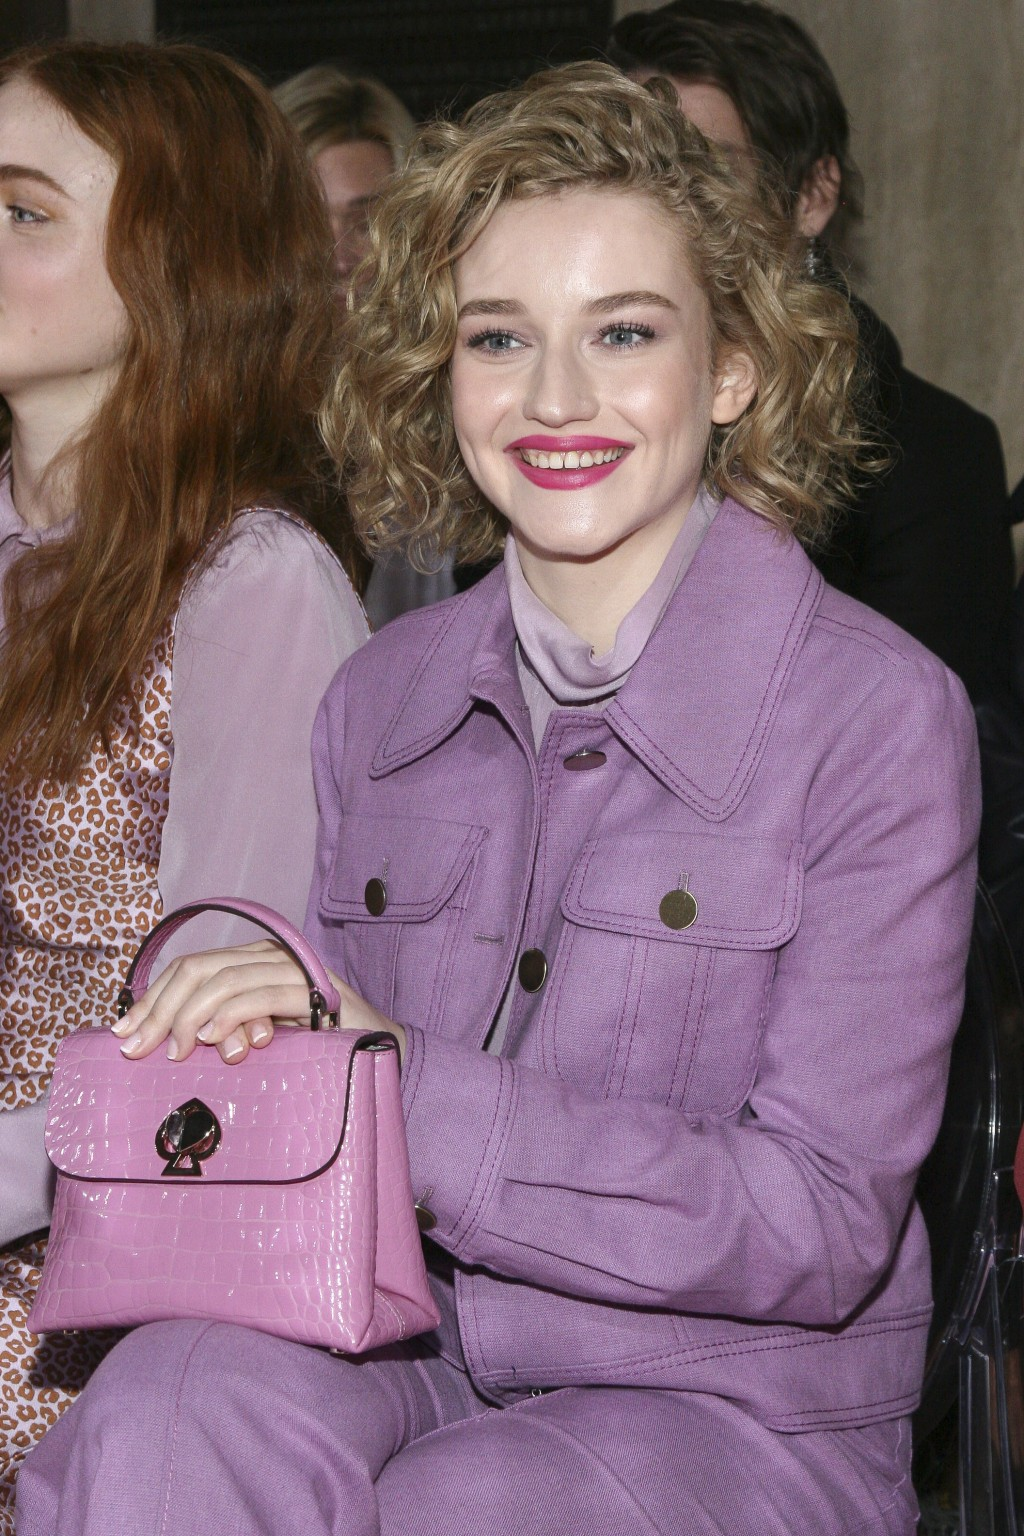 Julia Garner attends the NYFW Fall/Winter 2019 Kate Spade fashion show at the Cipriani's on Friday, Feb. 8, 2019, in New York. (Photo by Andy Kropa/In